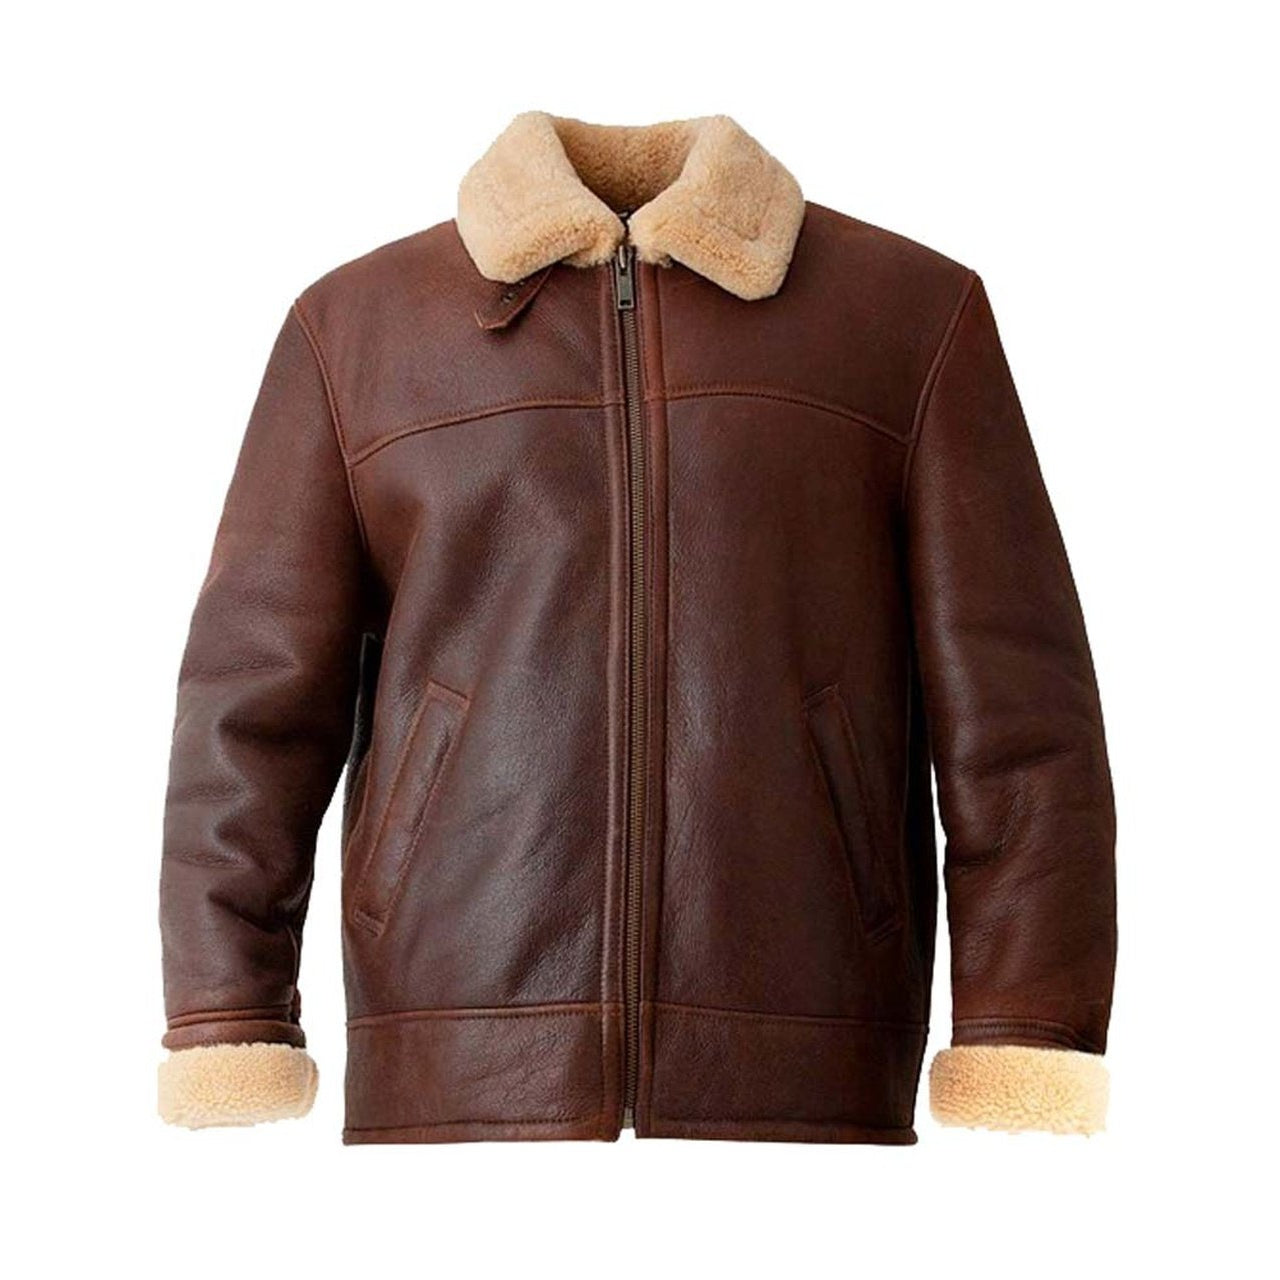 Brown Men Aviator Leather Jacket - Leather Jacket